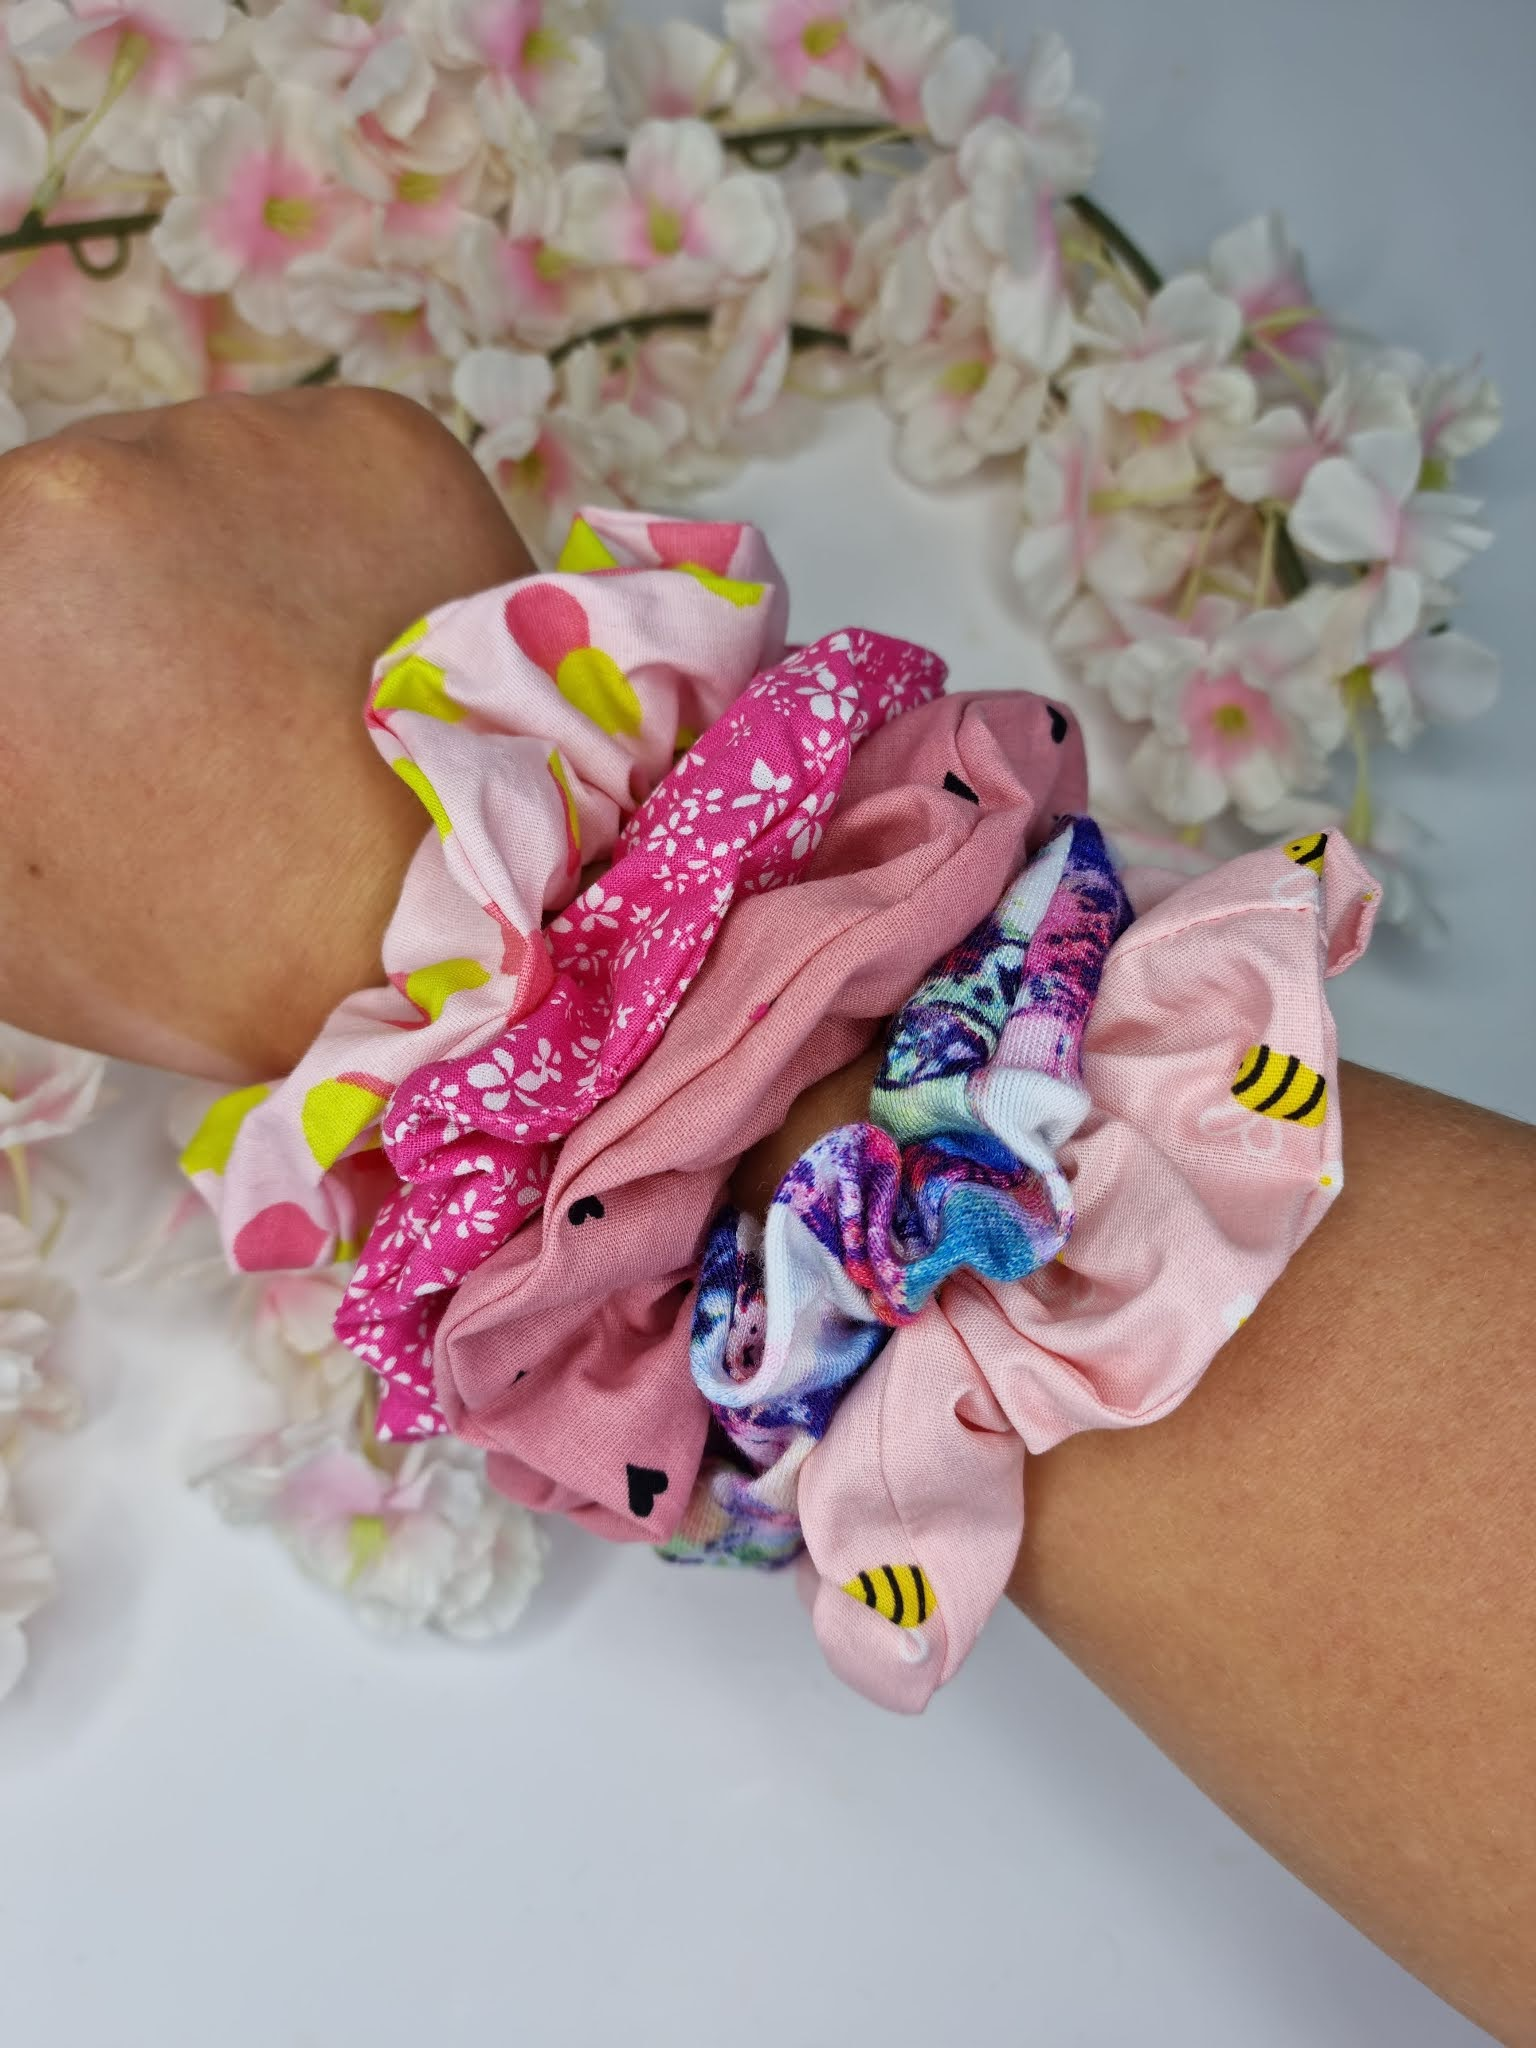 Sammi's Scrunchies scrunchies on a wrist